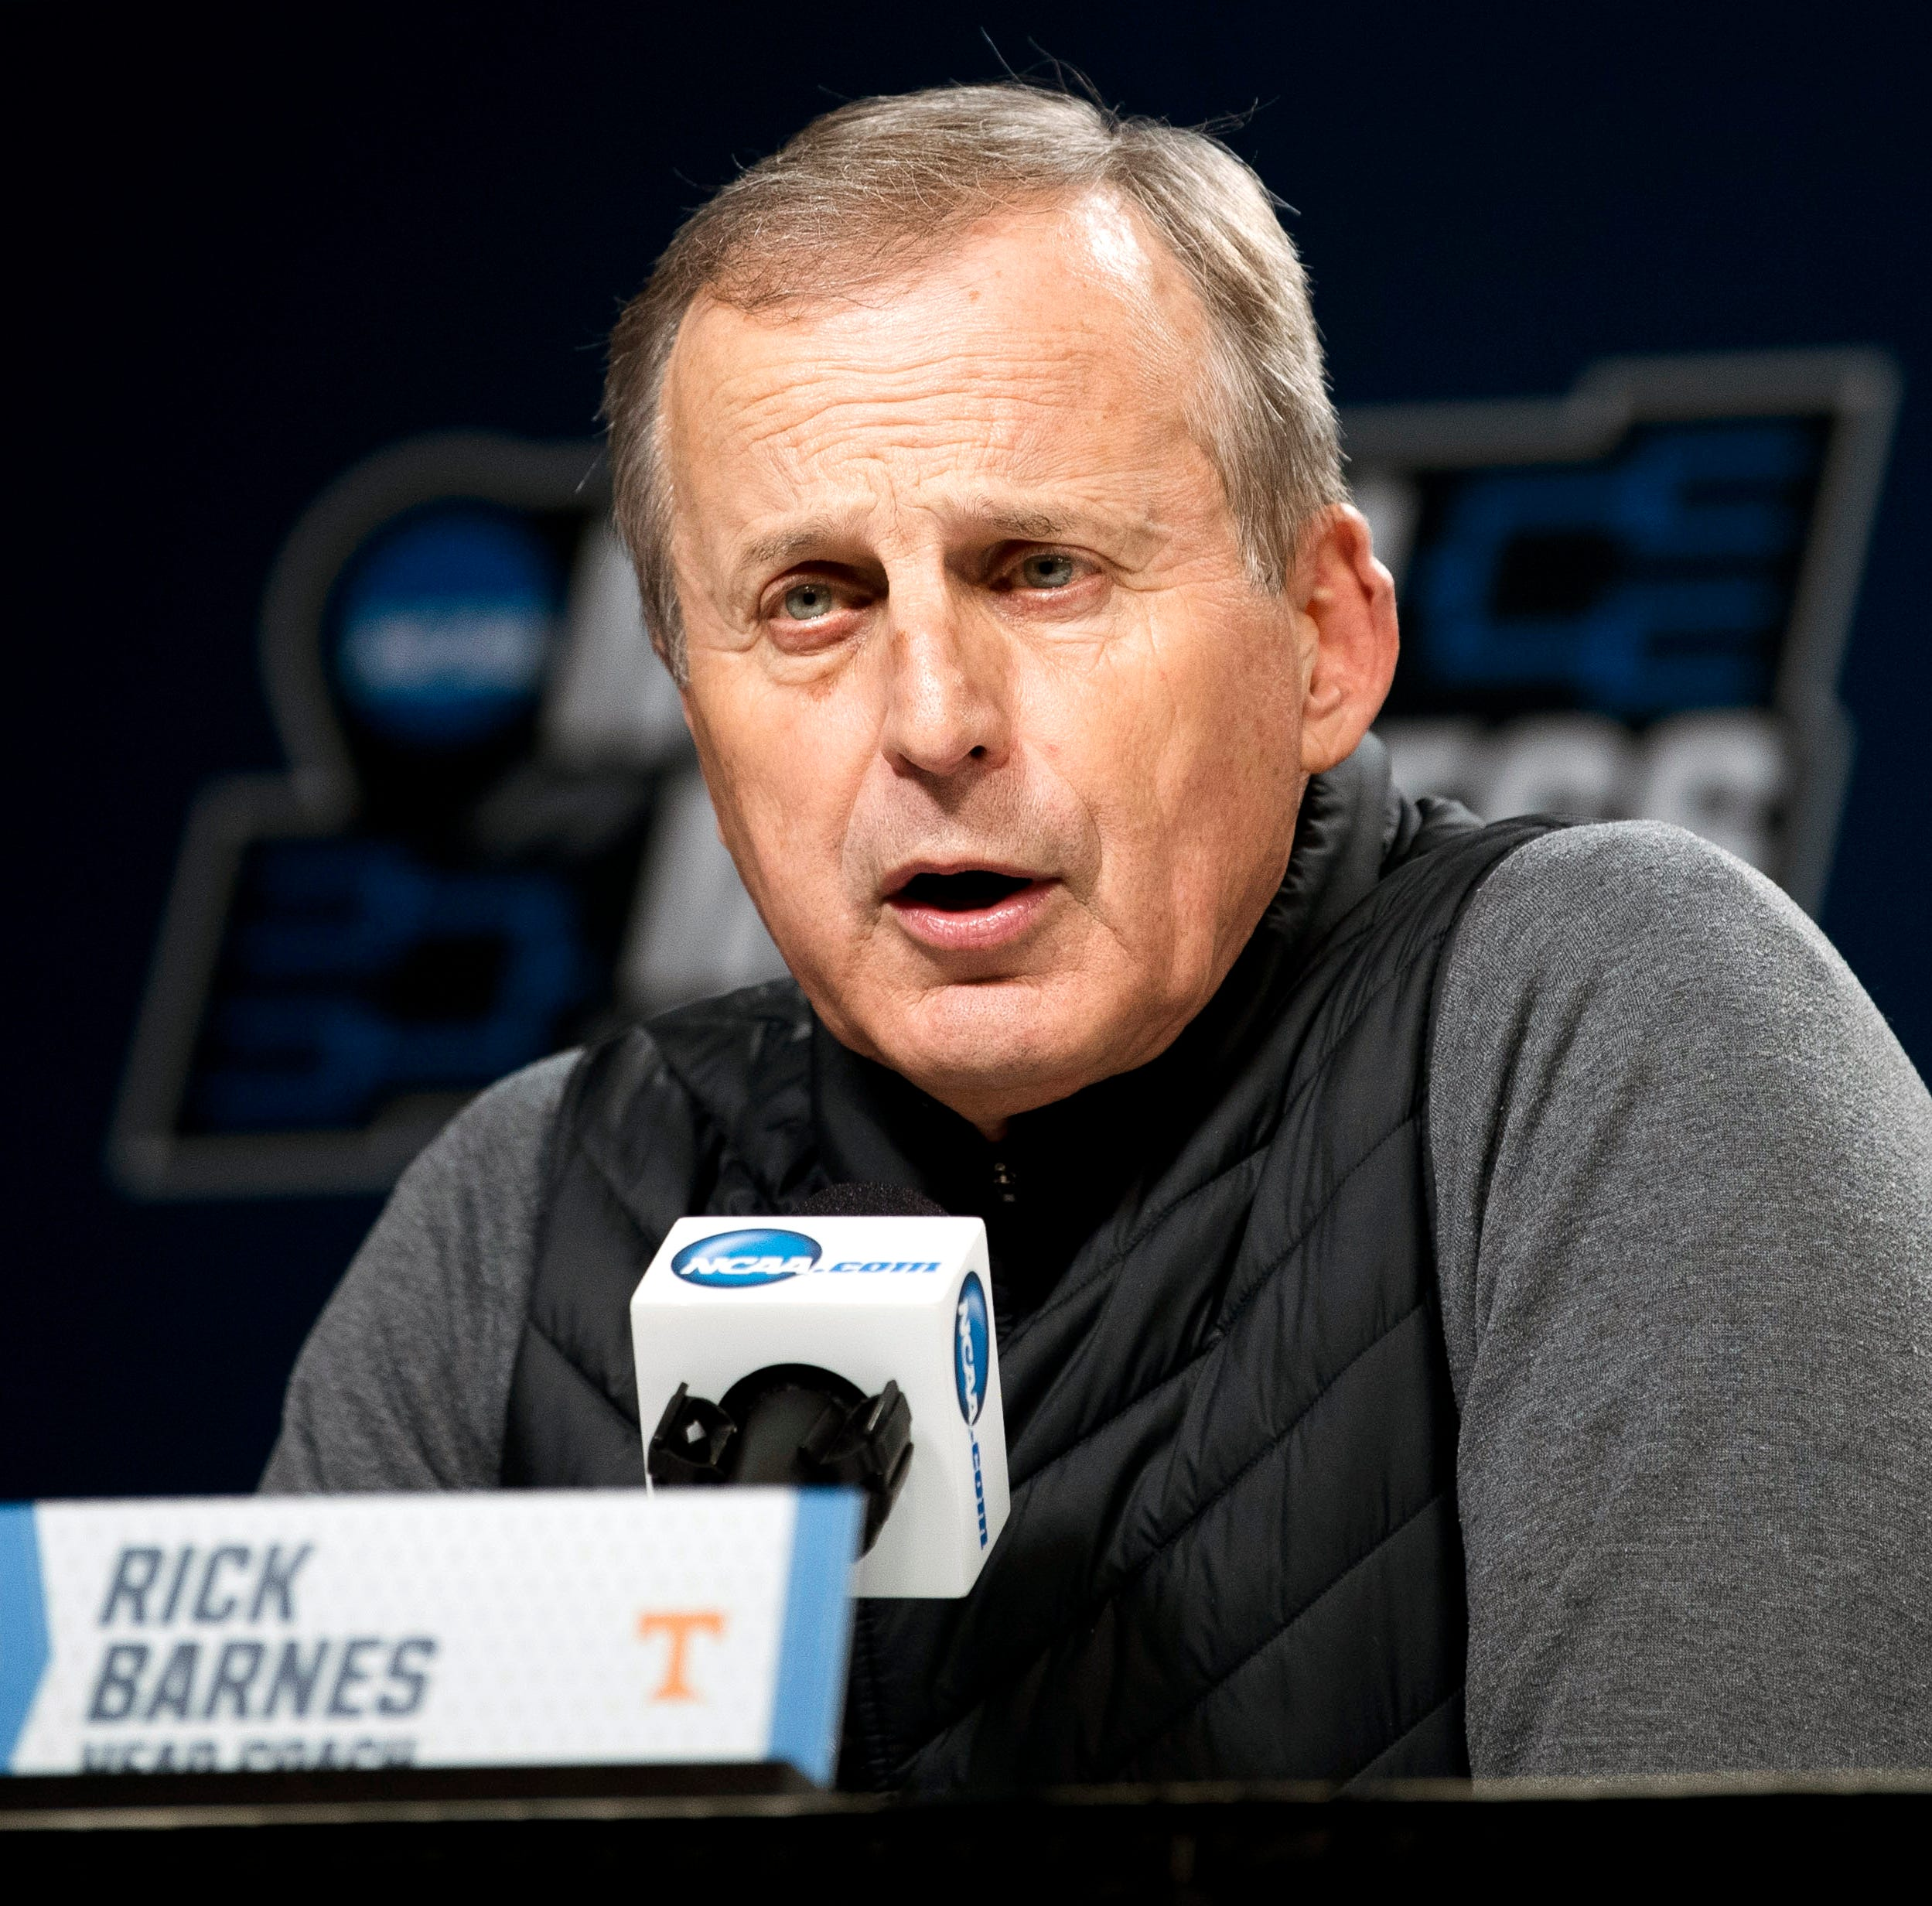 Tennessee's Rick Barnes wasn't comfortable even up 25 against Iowa